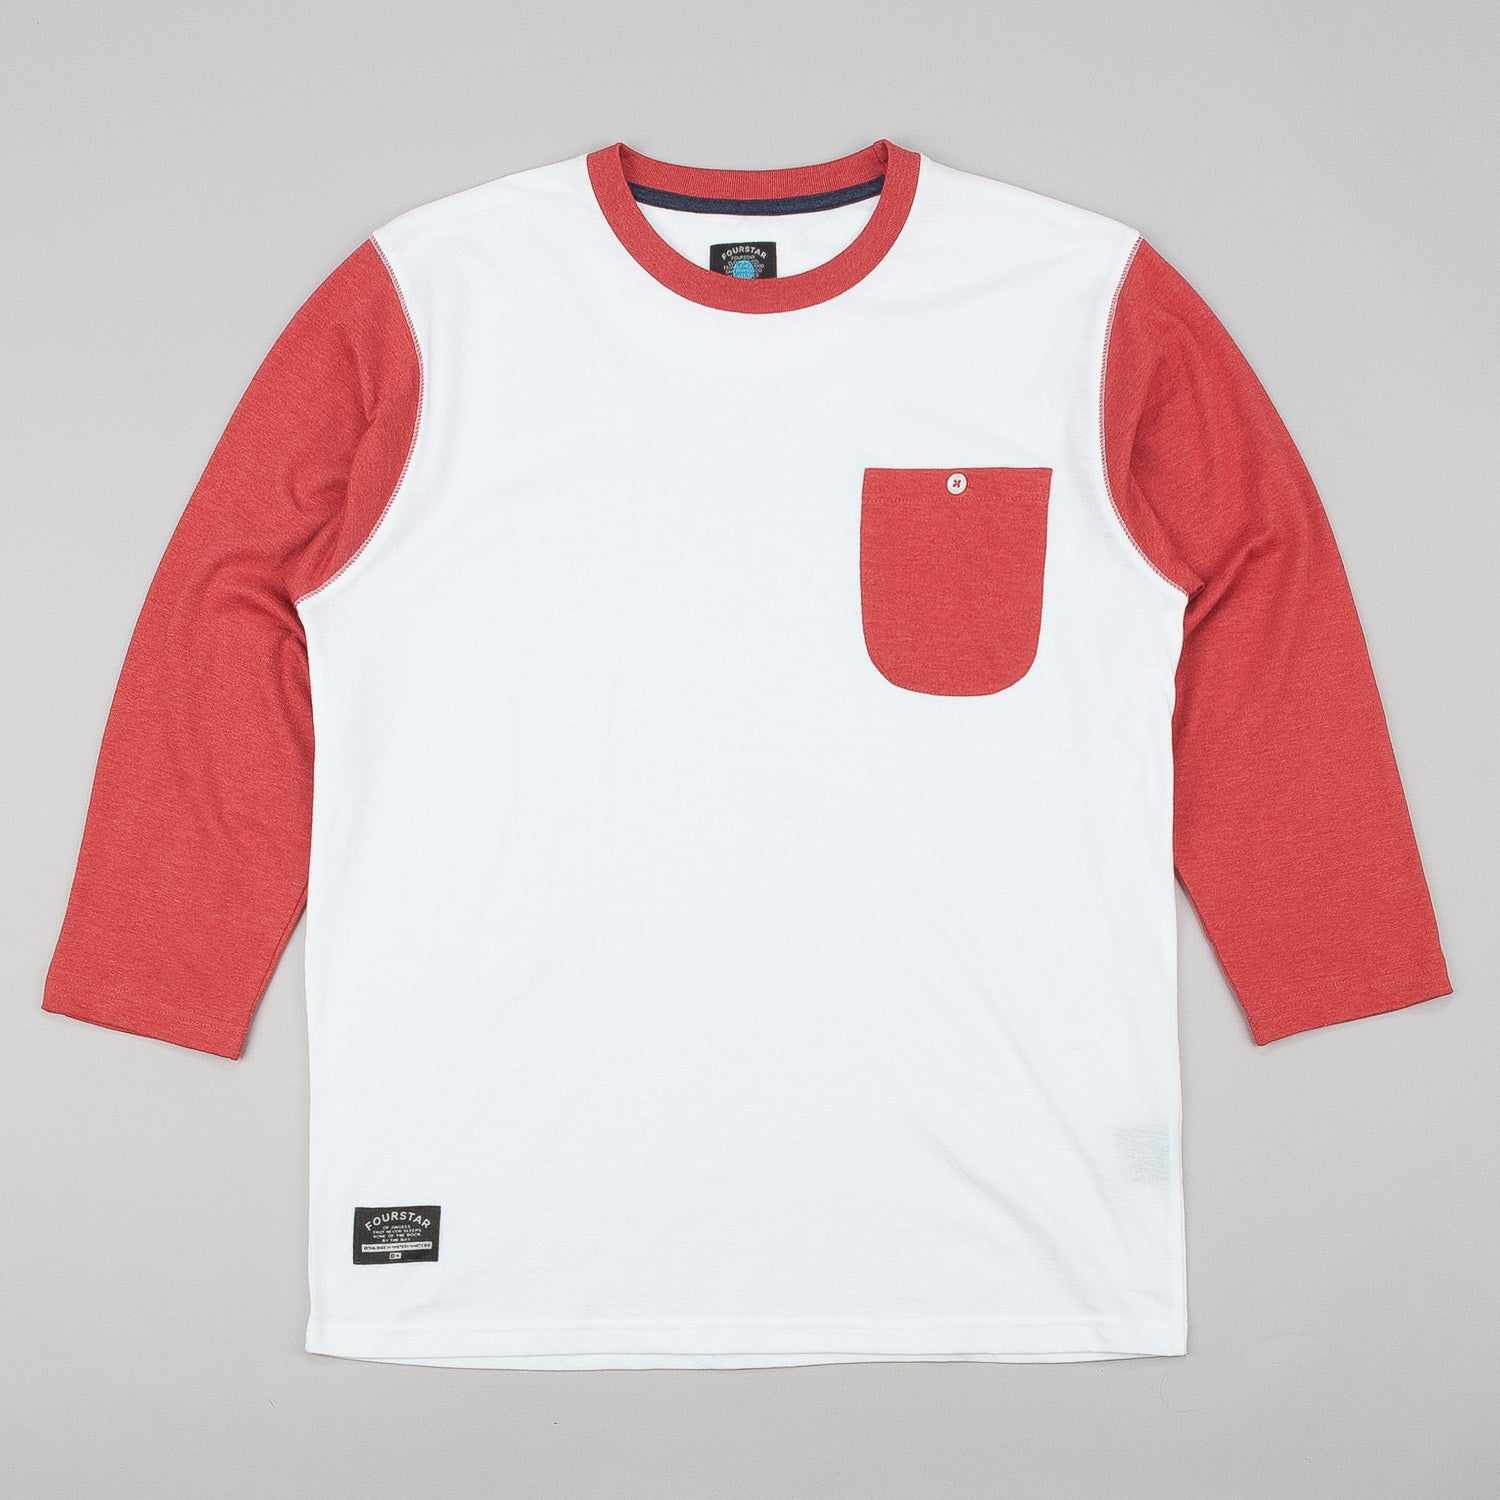 Fourstar Leavenworth 3/4 Sleeve Pocket T-Shirt - White / Red